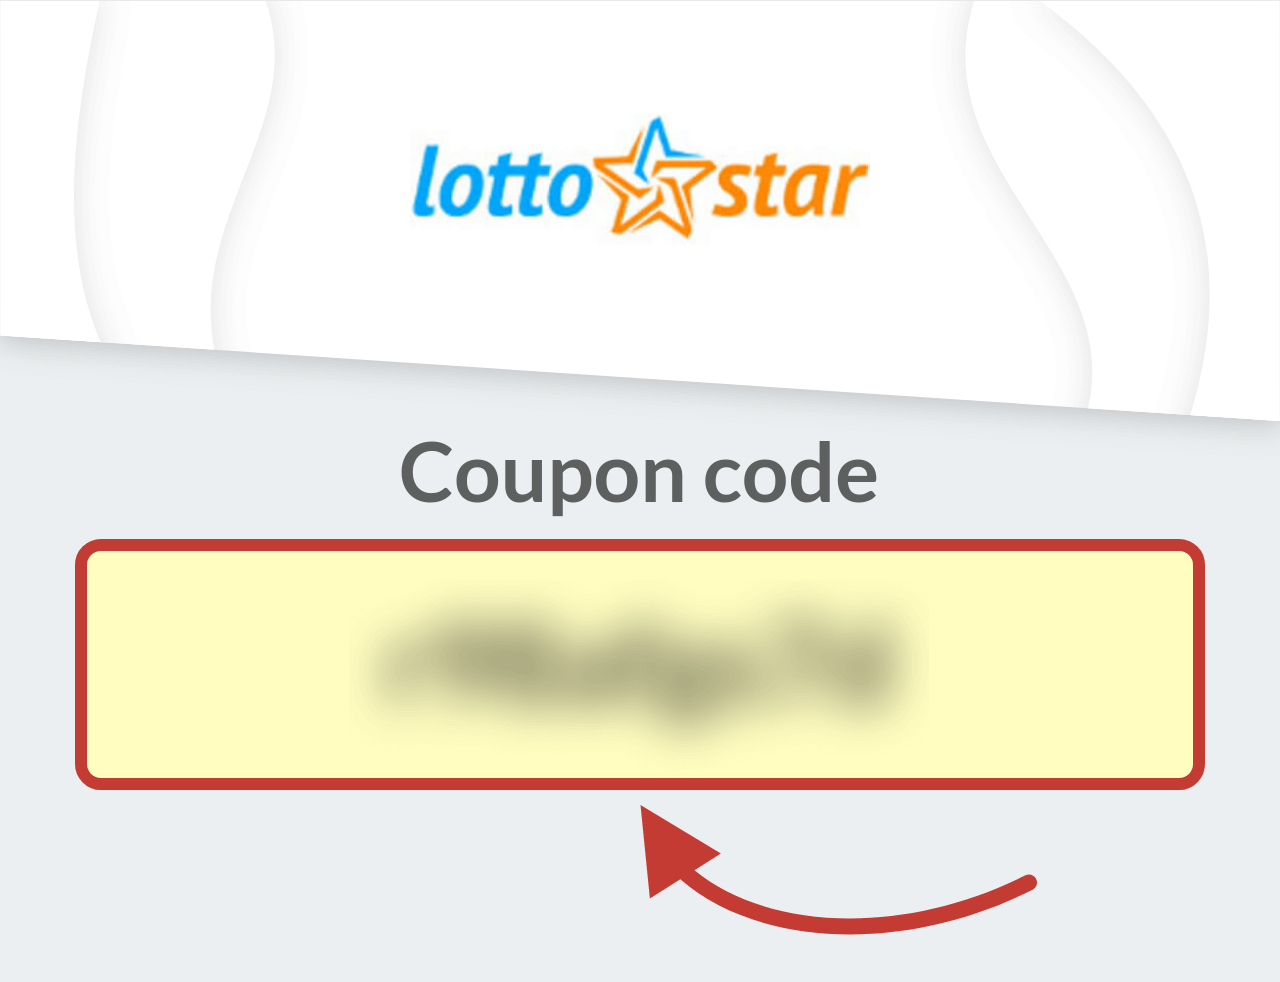 LottoStar Coupon Code